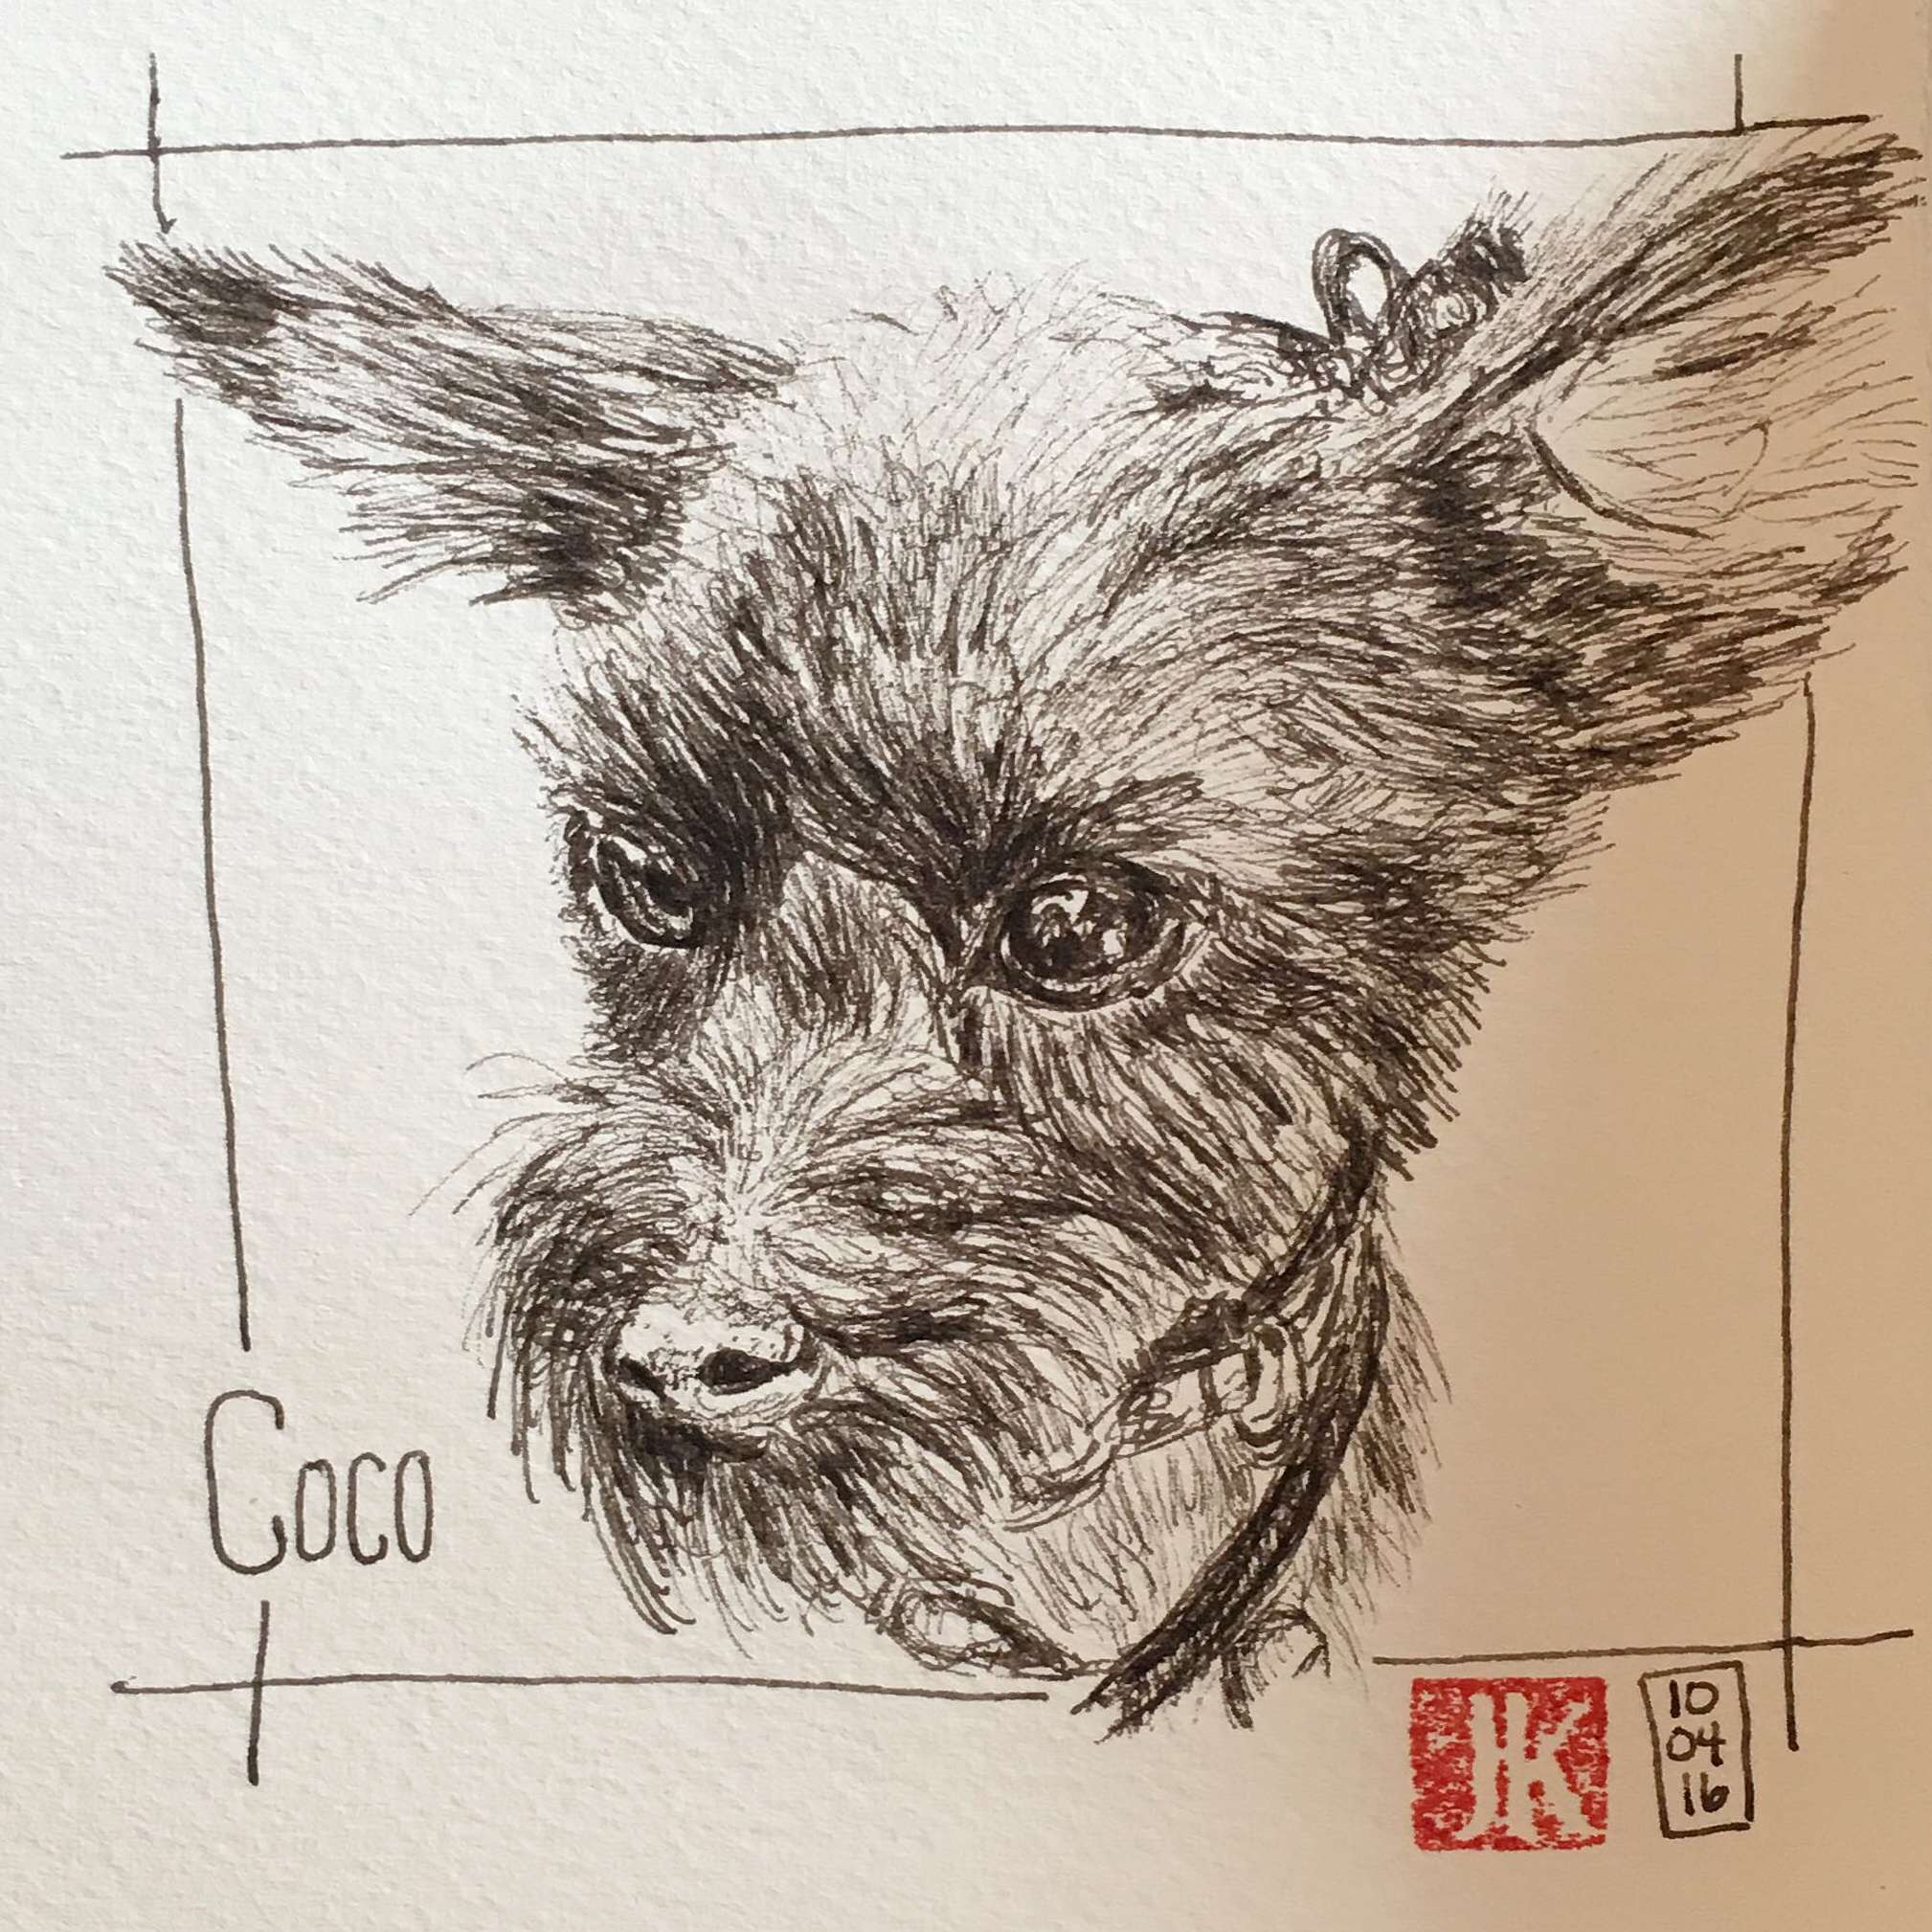 Practicing my hatching skills with a drawing of my dog, Coco